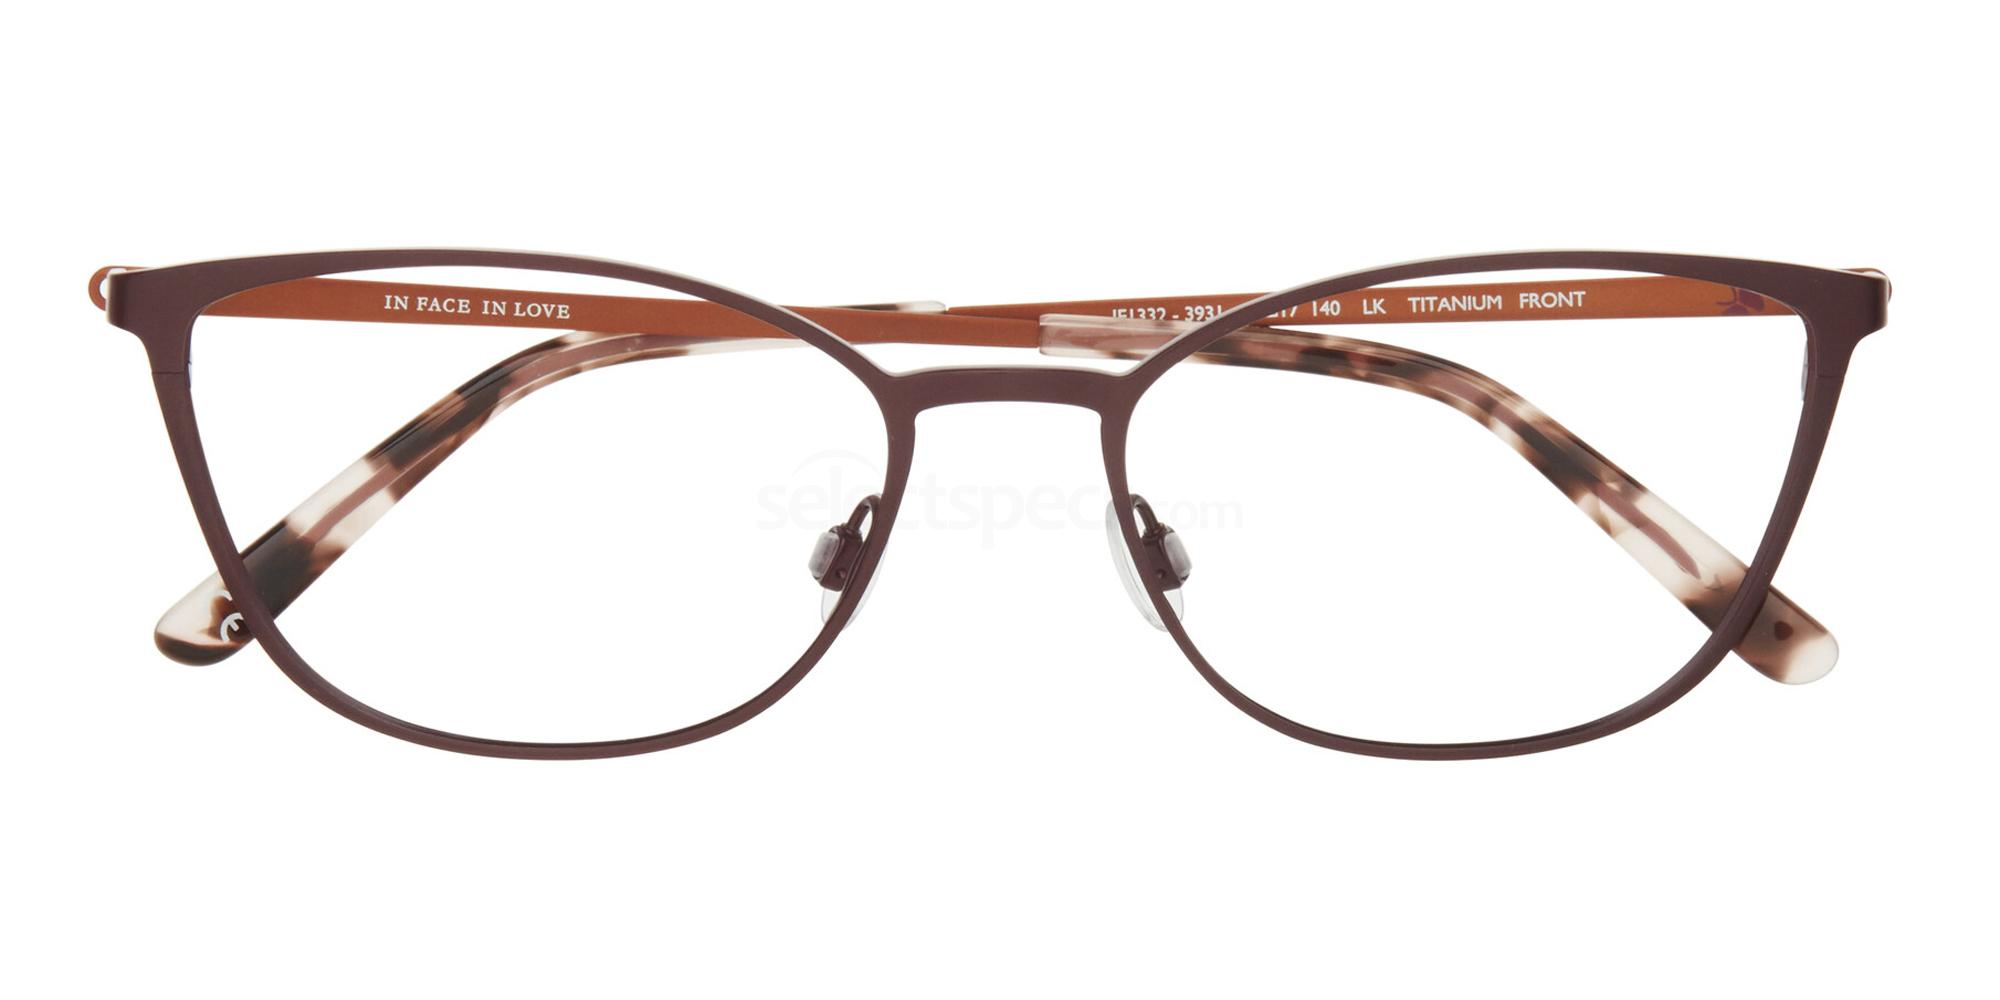 3931 IF1332 Glasses, Inface in Love